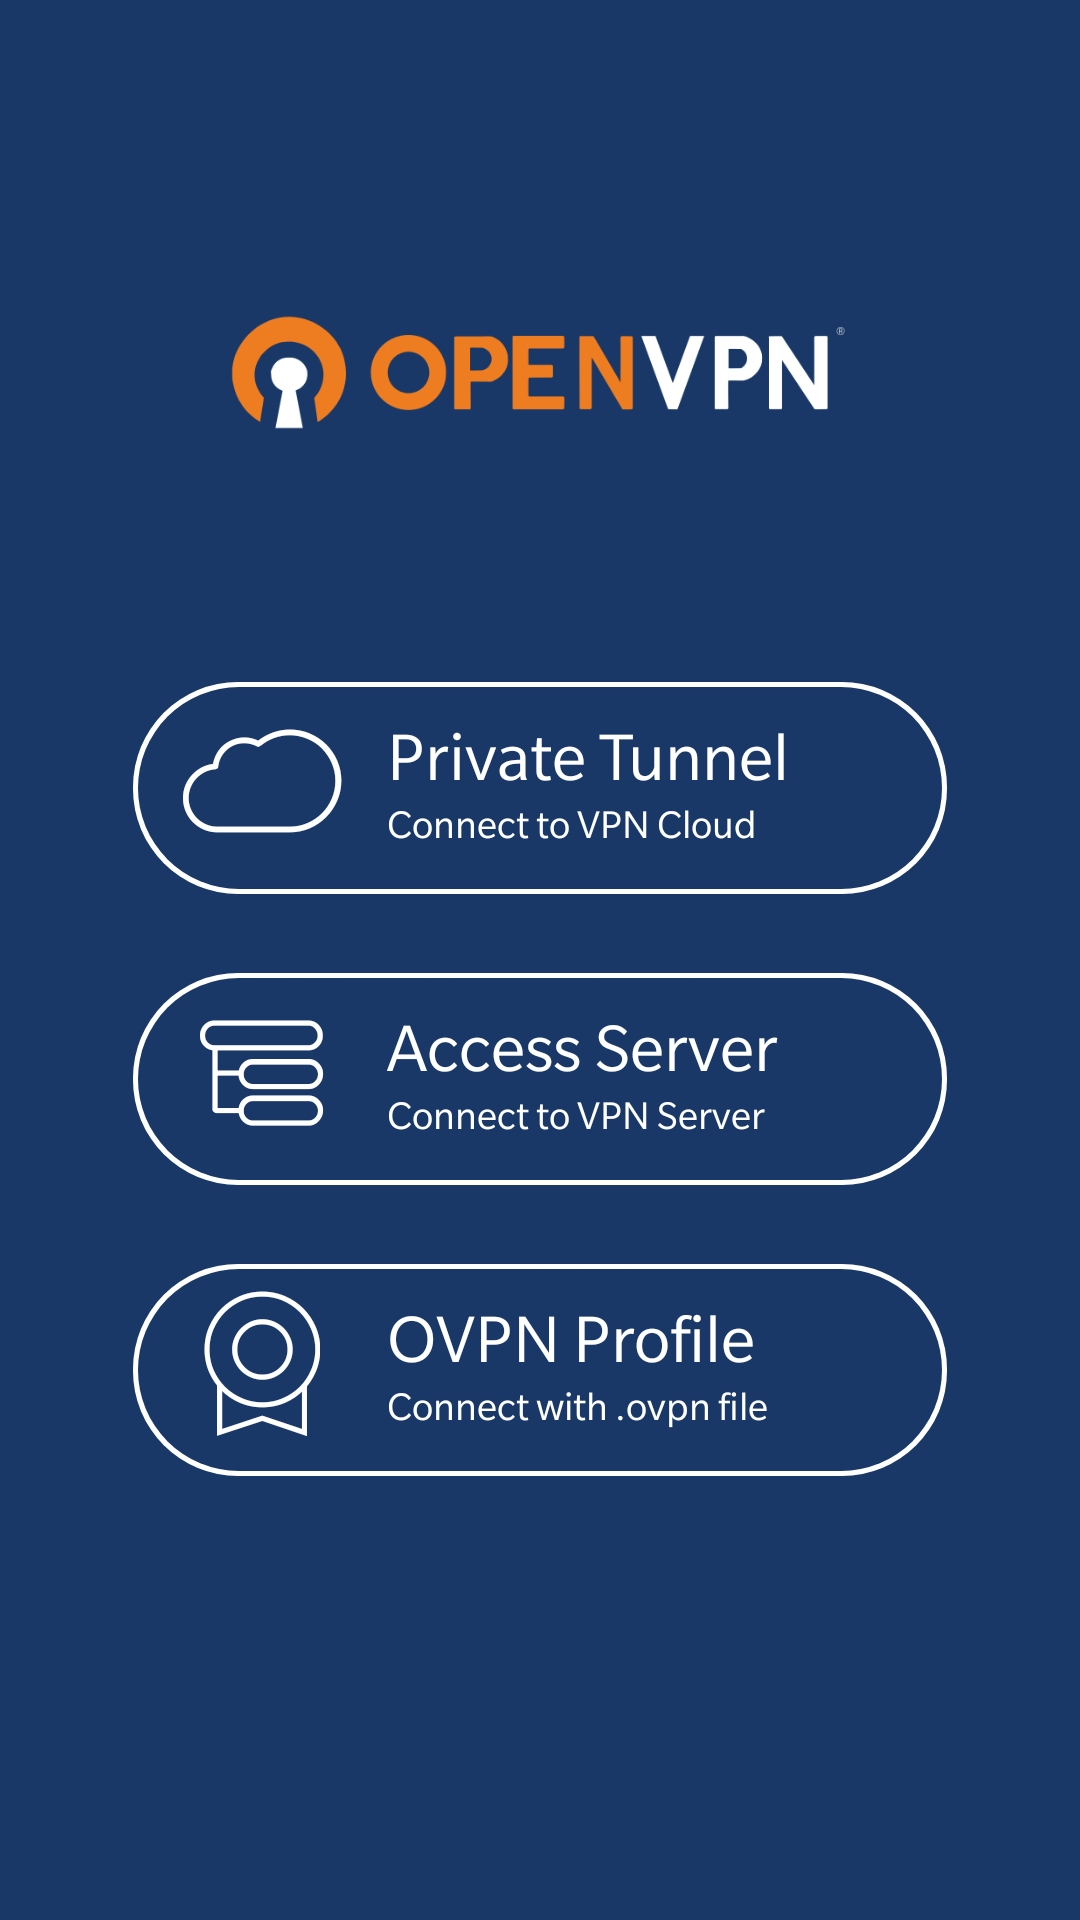 How to configure Android OpenVPN client with certificate